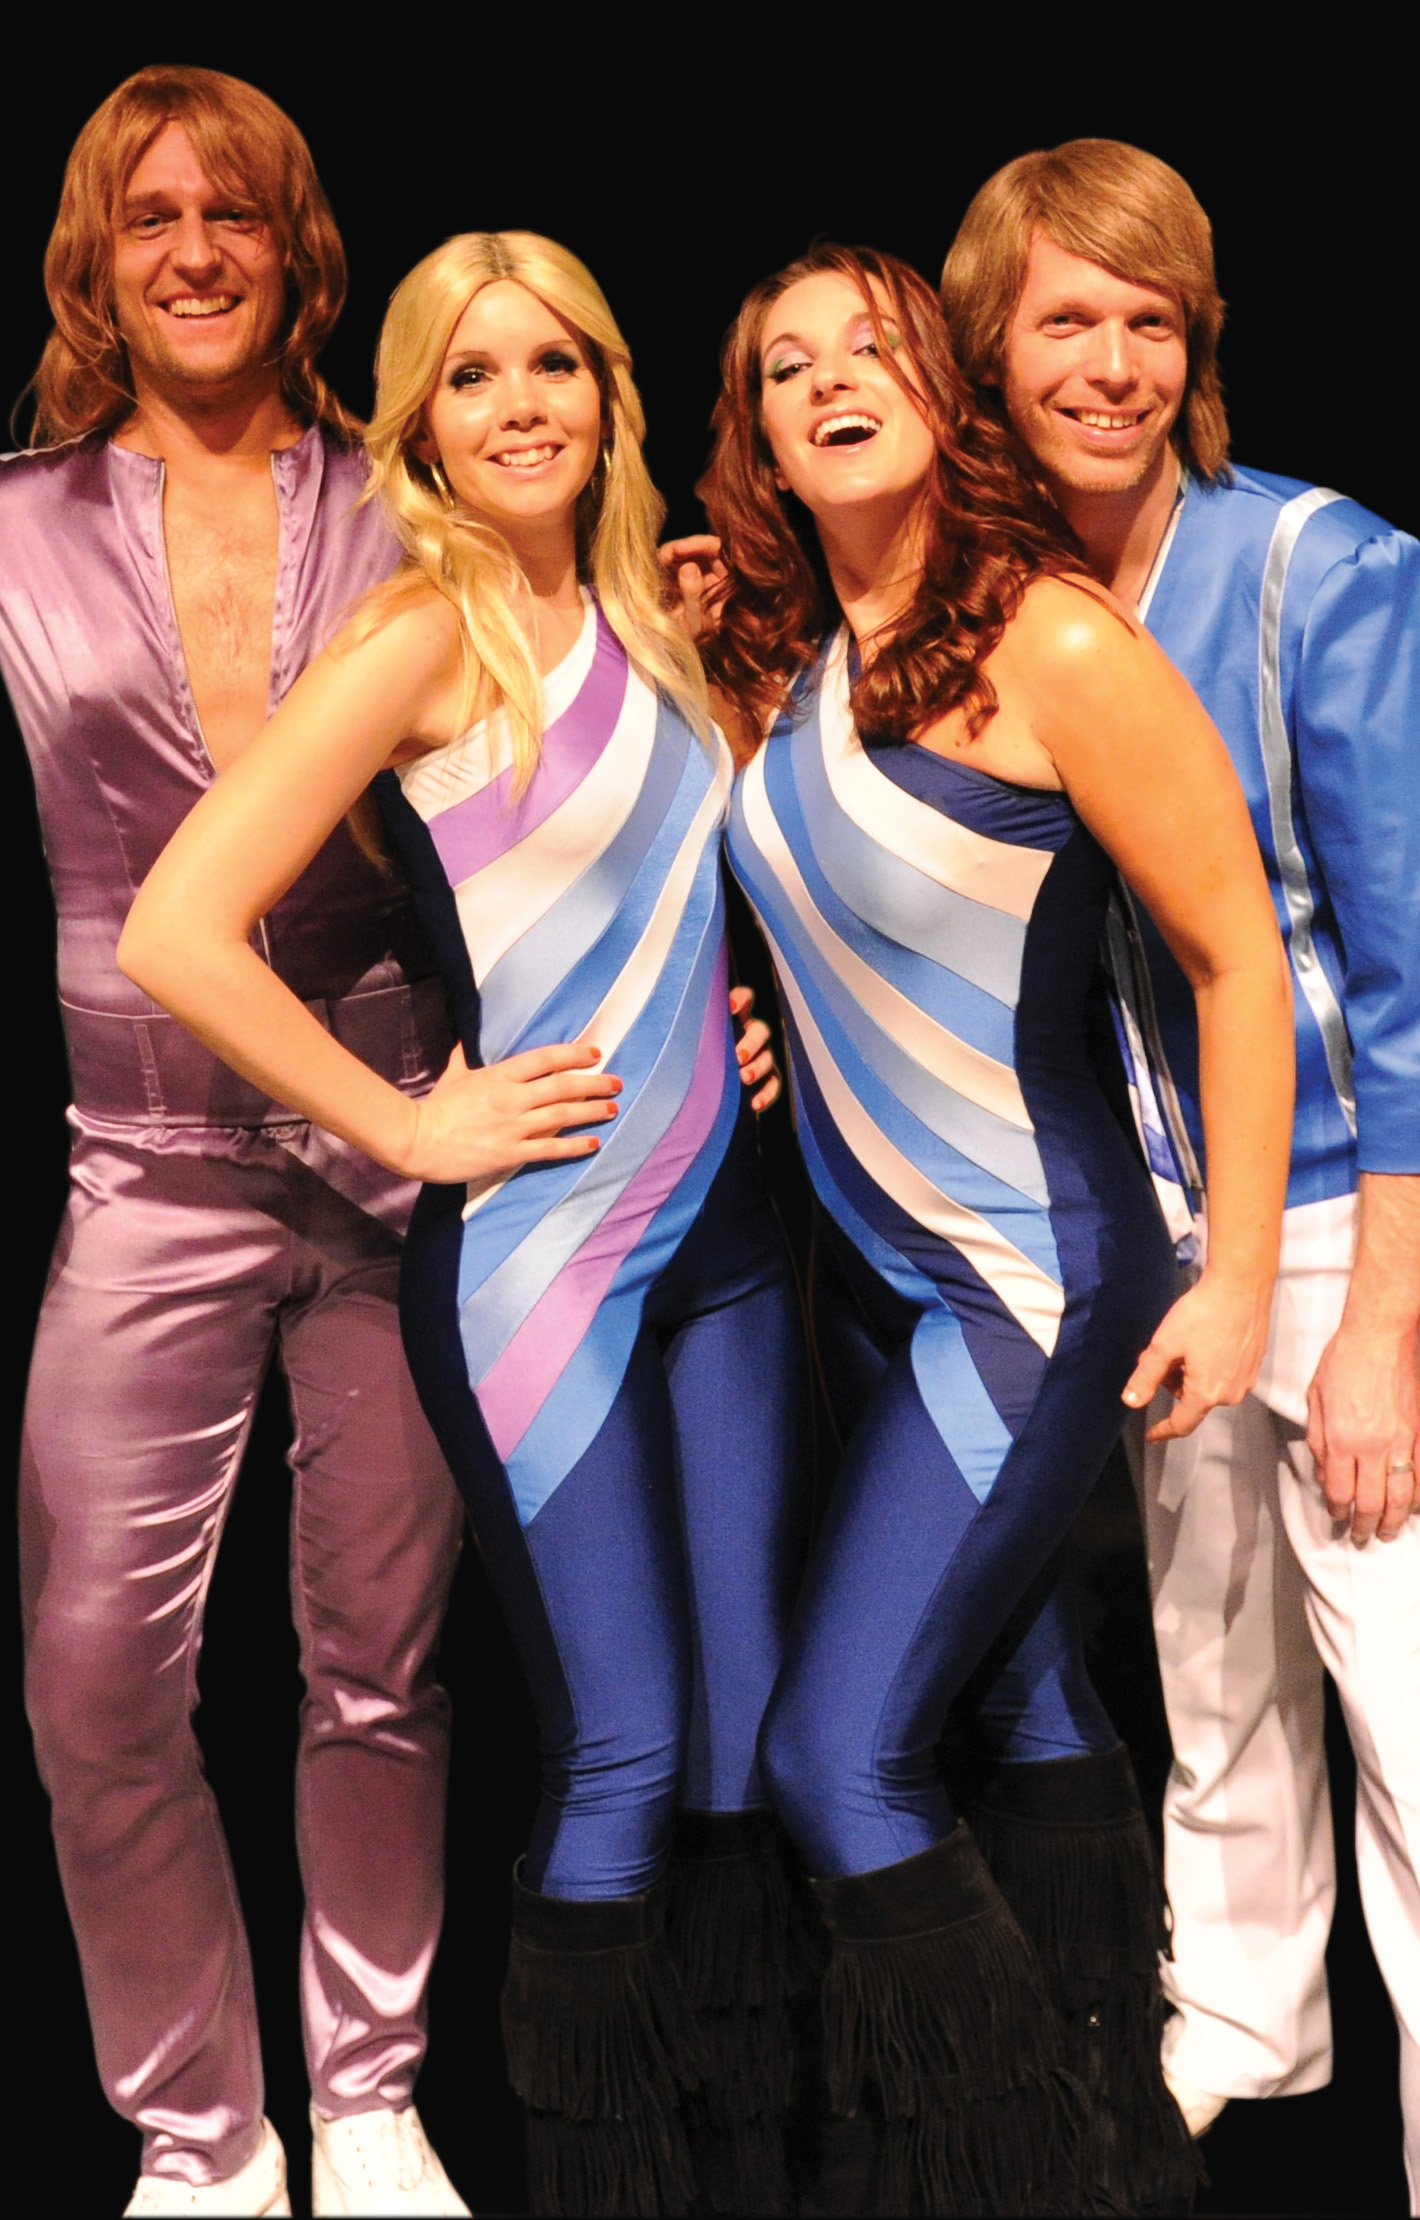 ABBA - The Concert, a tribute band, will perform at the Palladium at 7 p.m. on Oct. 20. (Submitted photo)